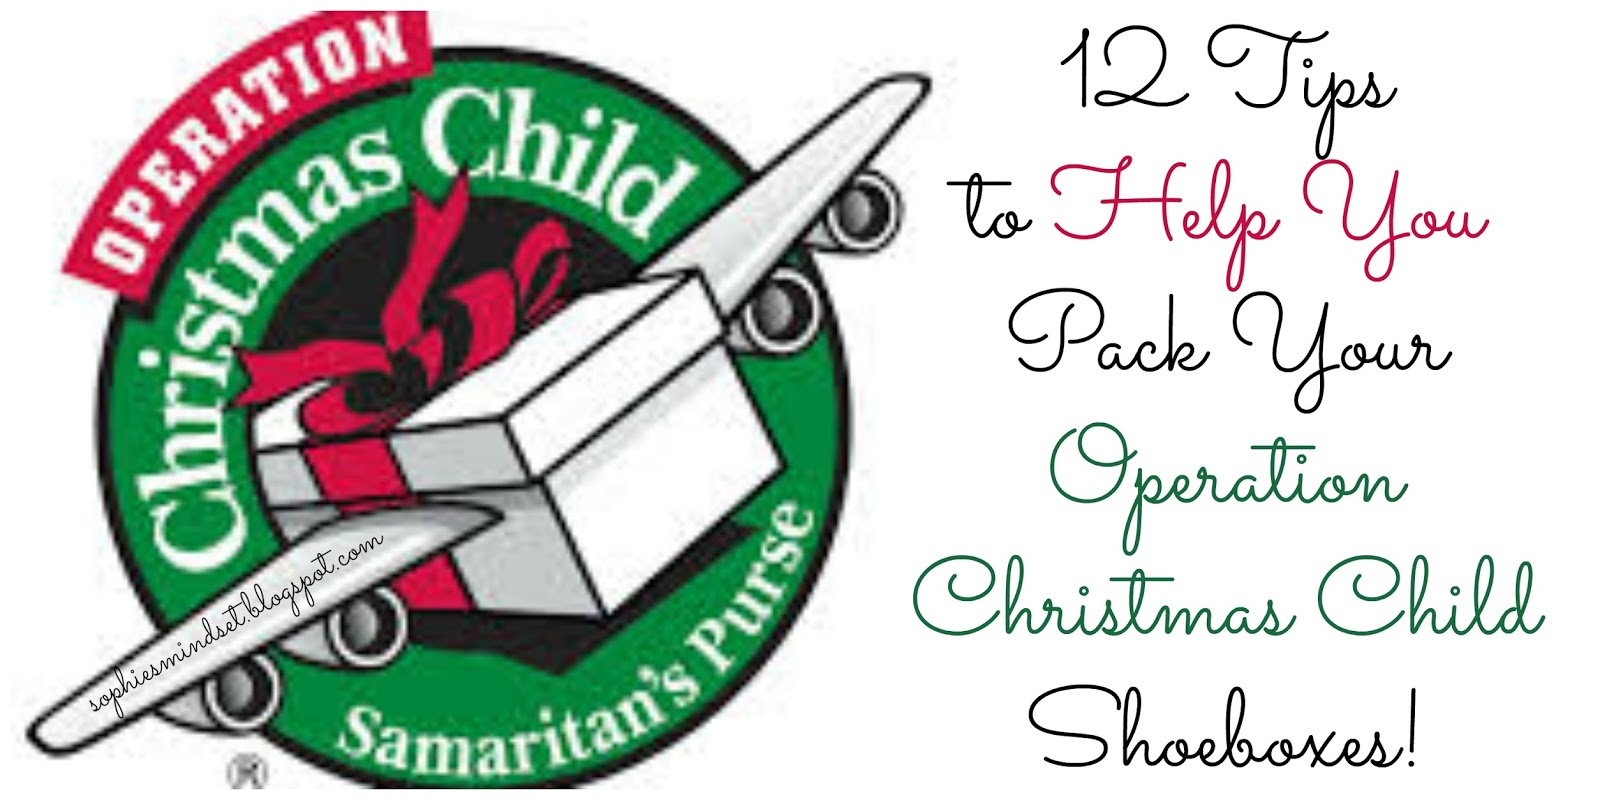 Sophie's Mindset: 12 Tips for Operation Christmas Child Shoeboxes.